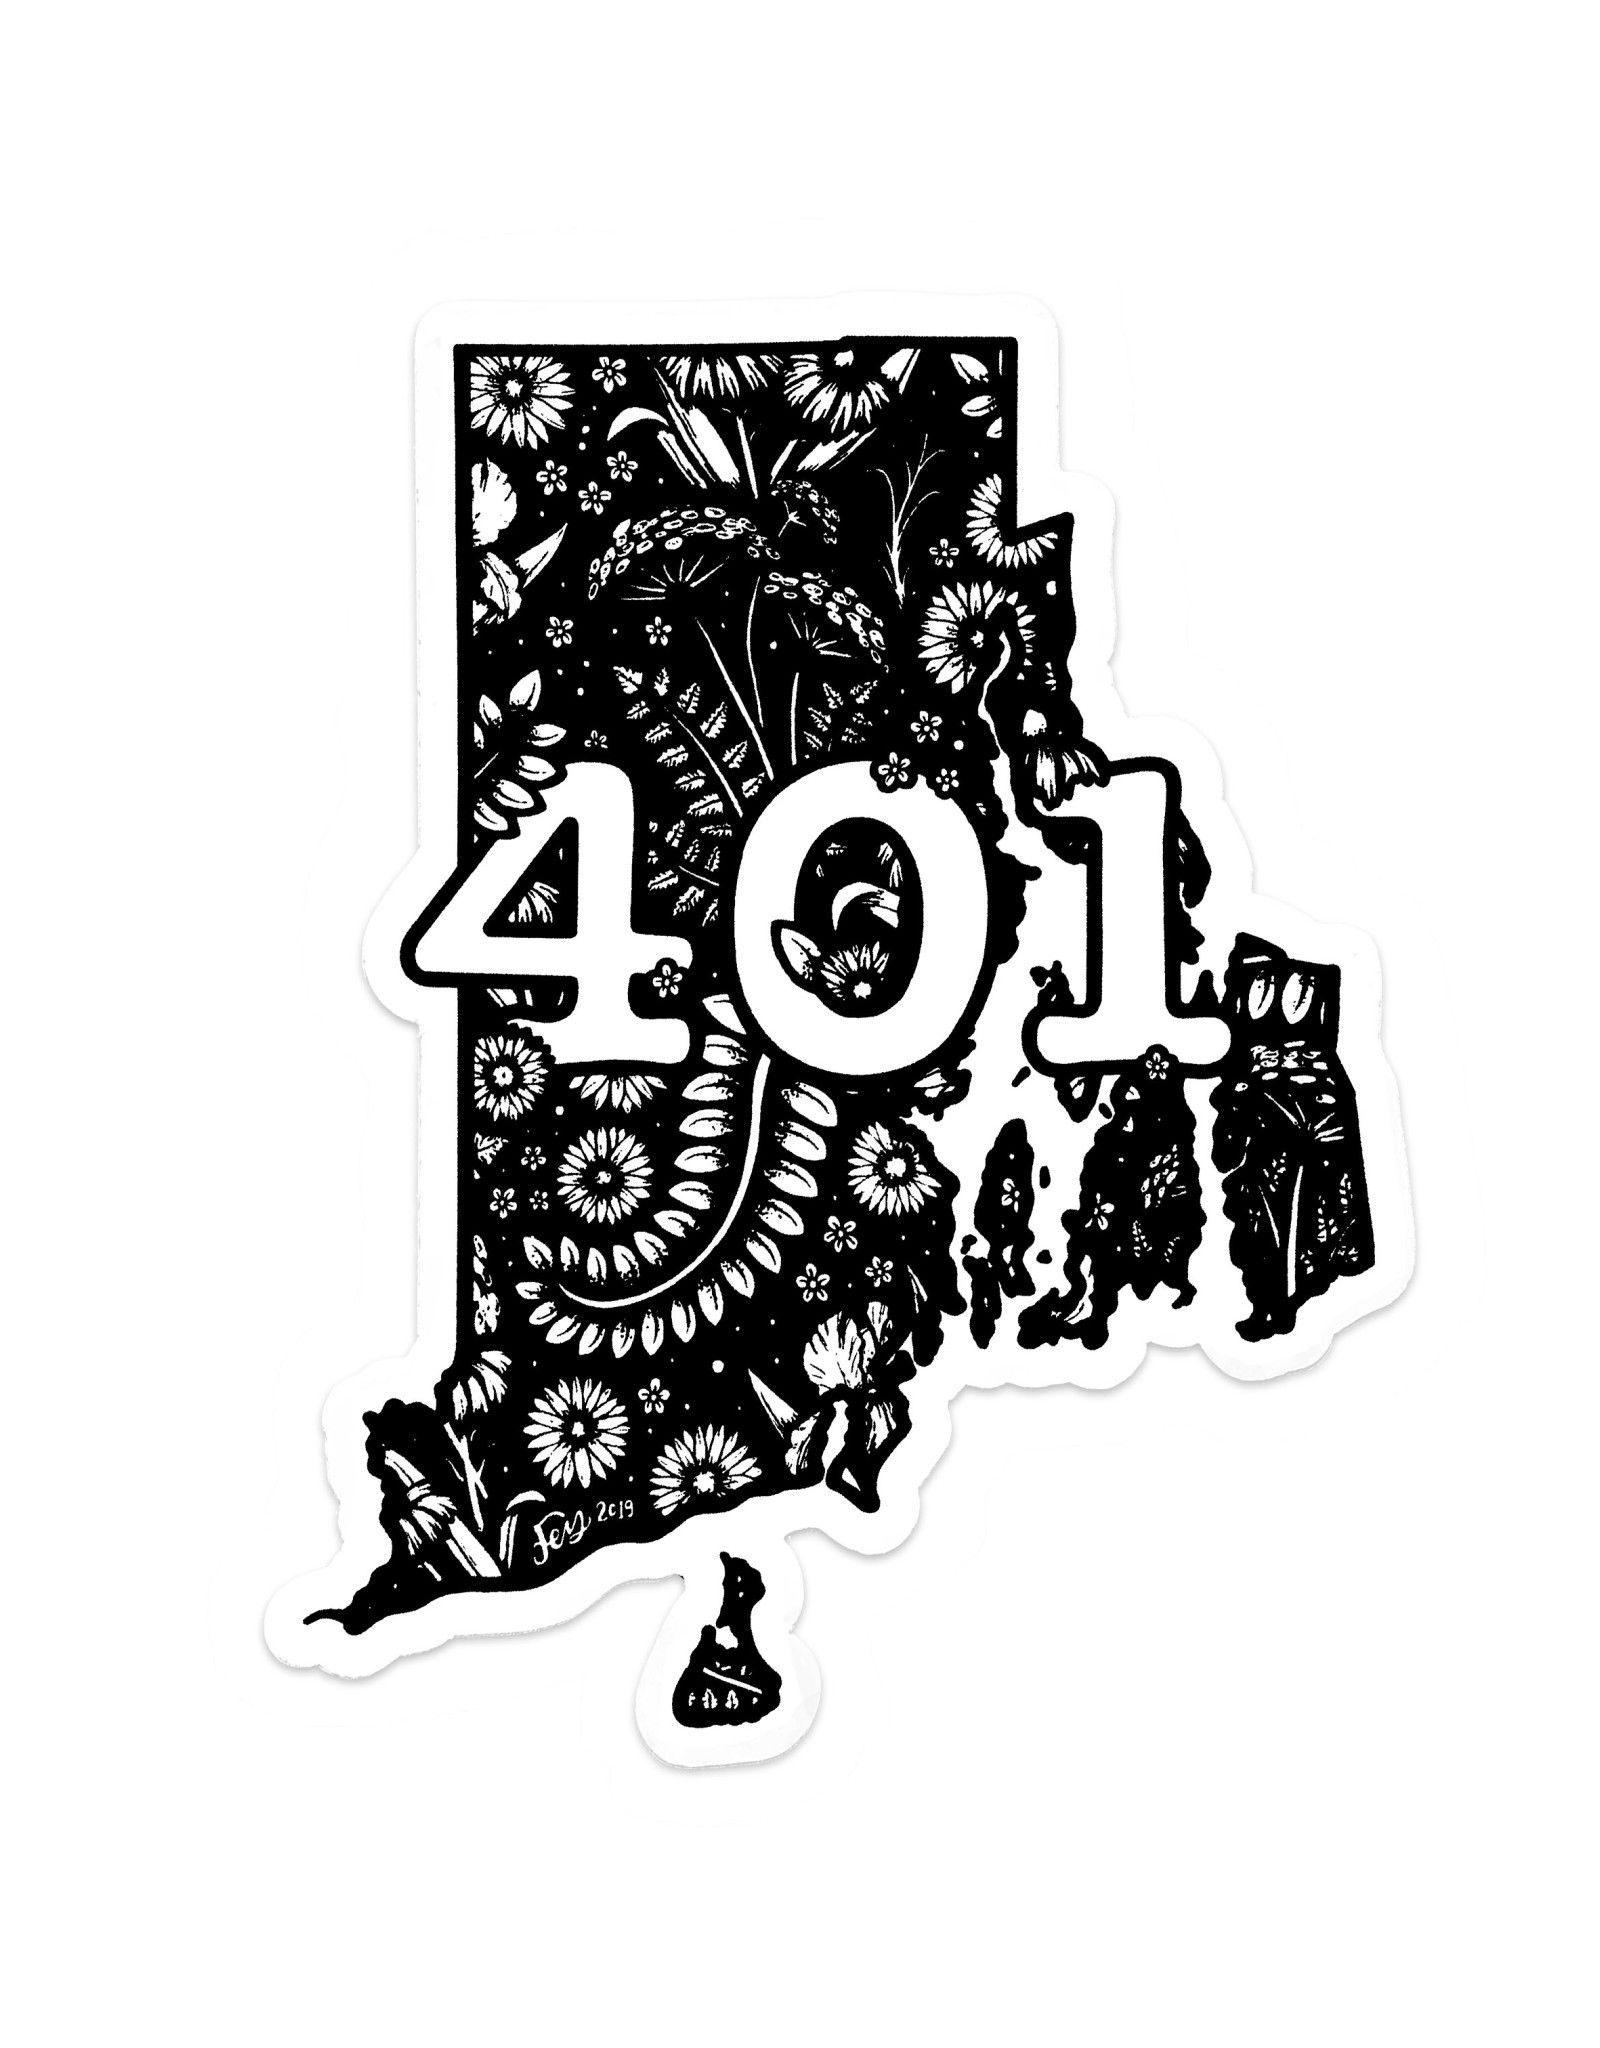 Floral RI Sticker - 401